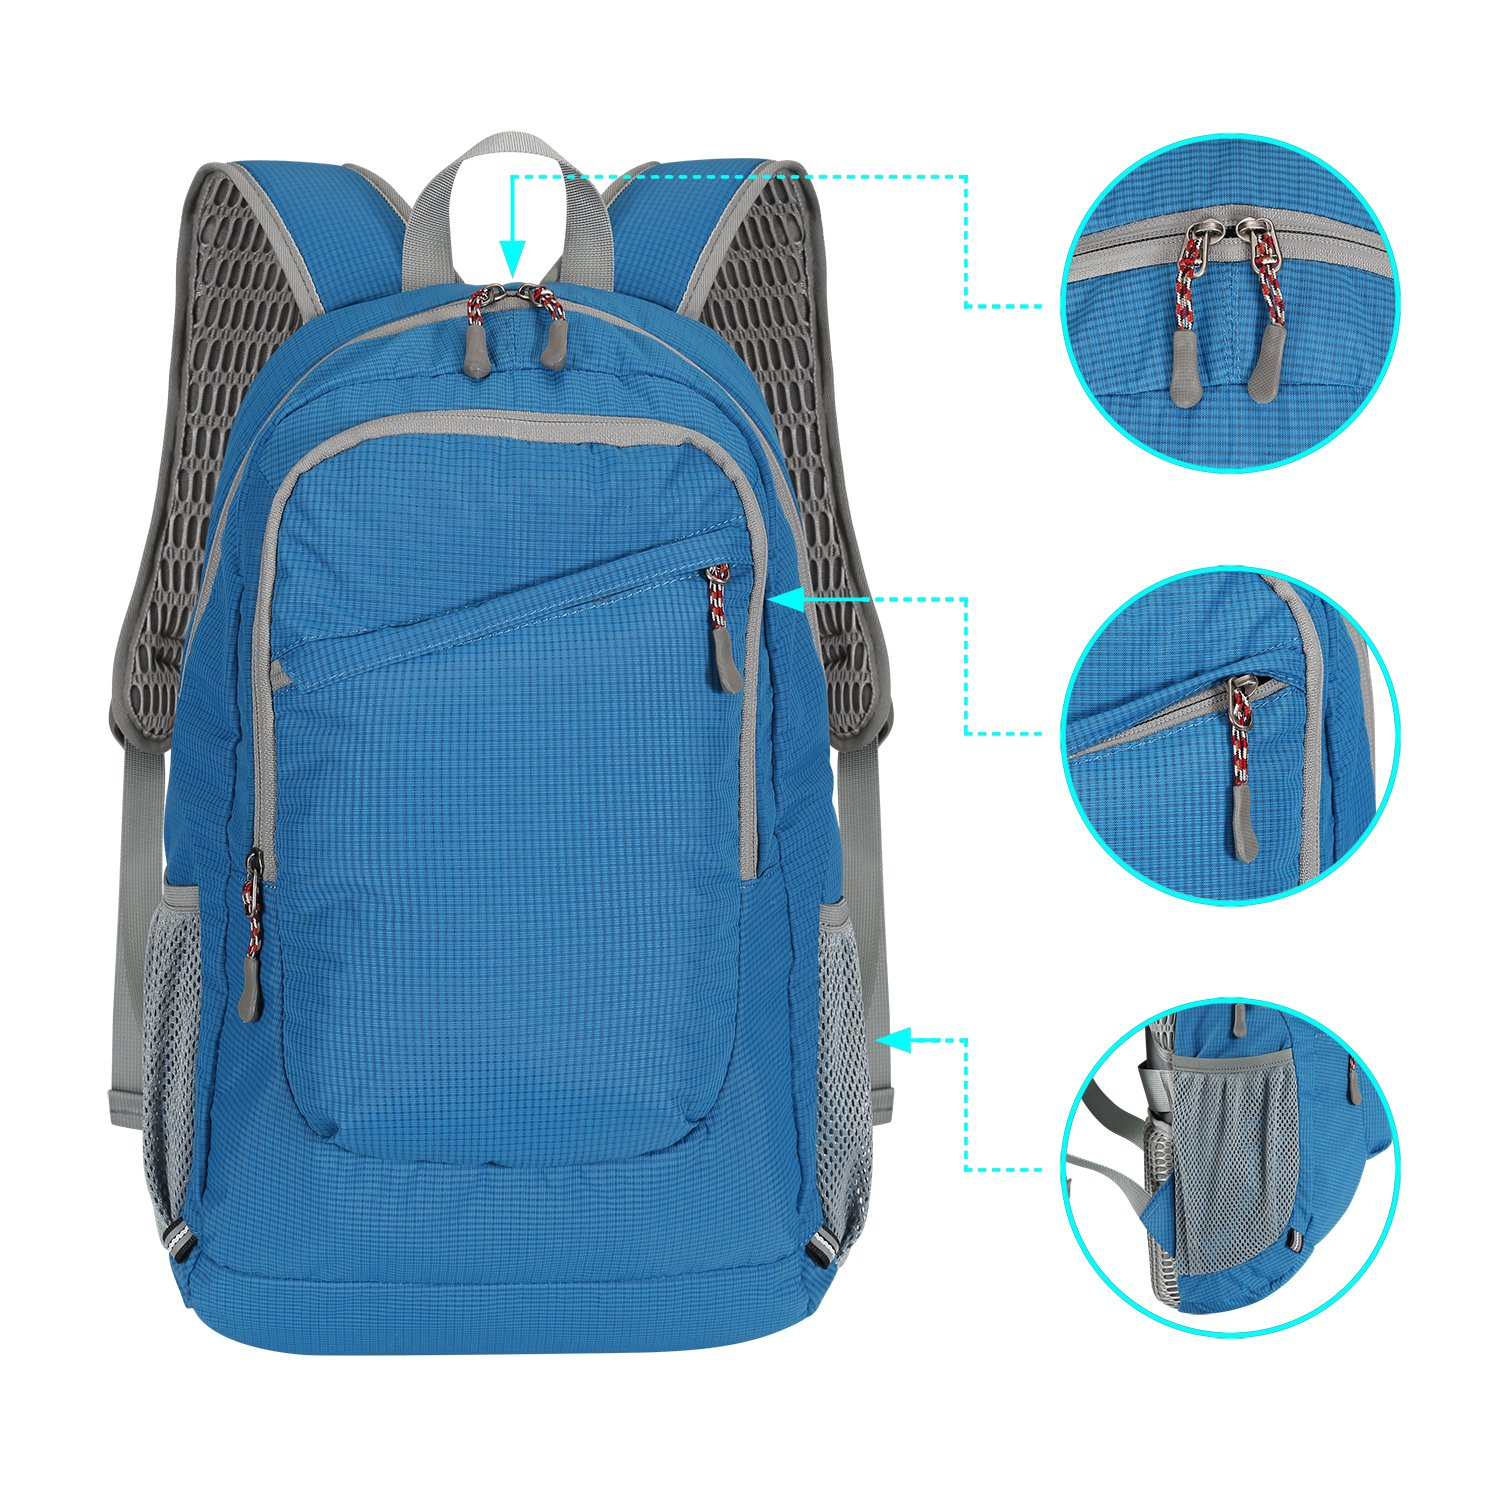 ibagbar Lightweight Travel Backpack Hiking Backpack Water Resistant Casual Multipurpose Daypack for Men and Women Blue